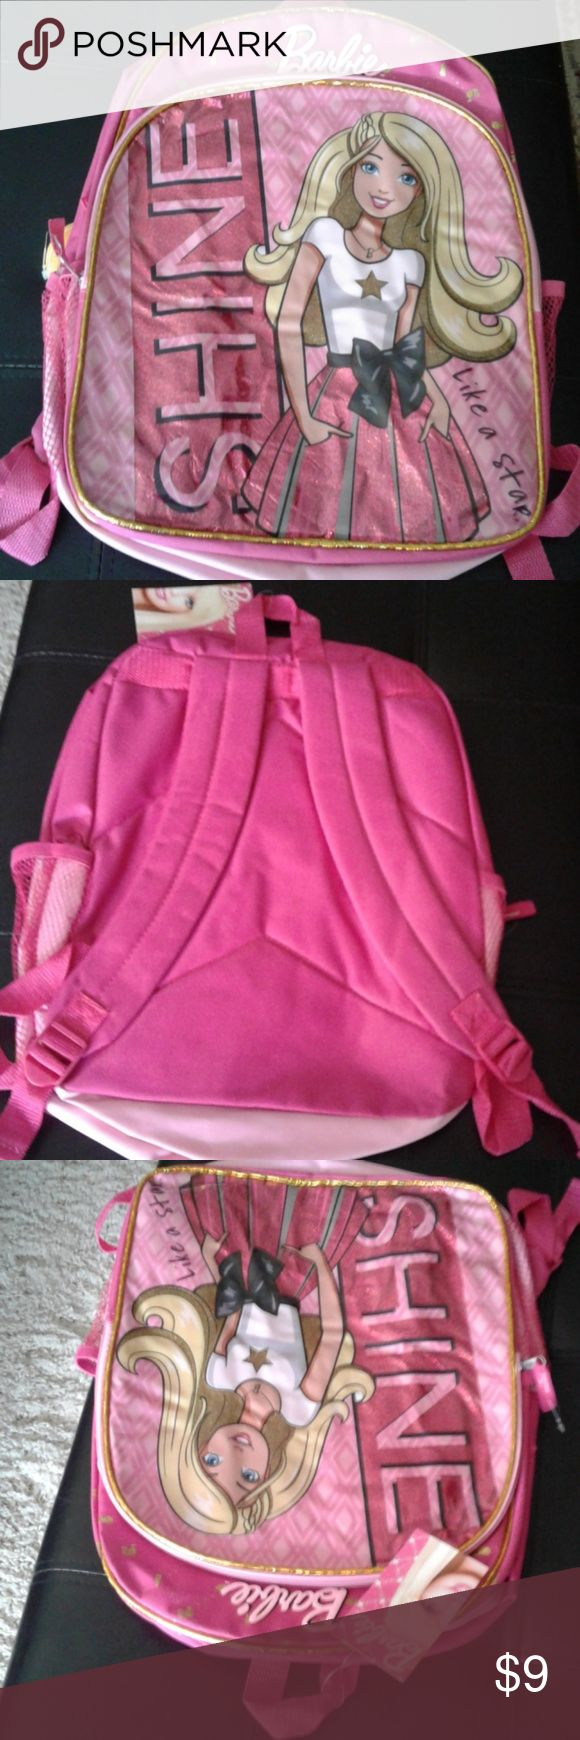 backpacks brandnew barbie girls backpack & Other Stories Other